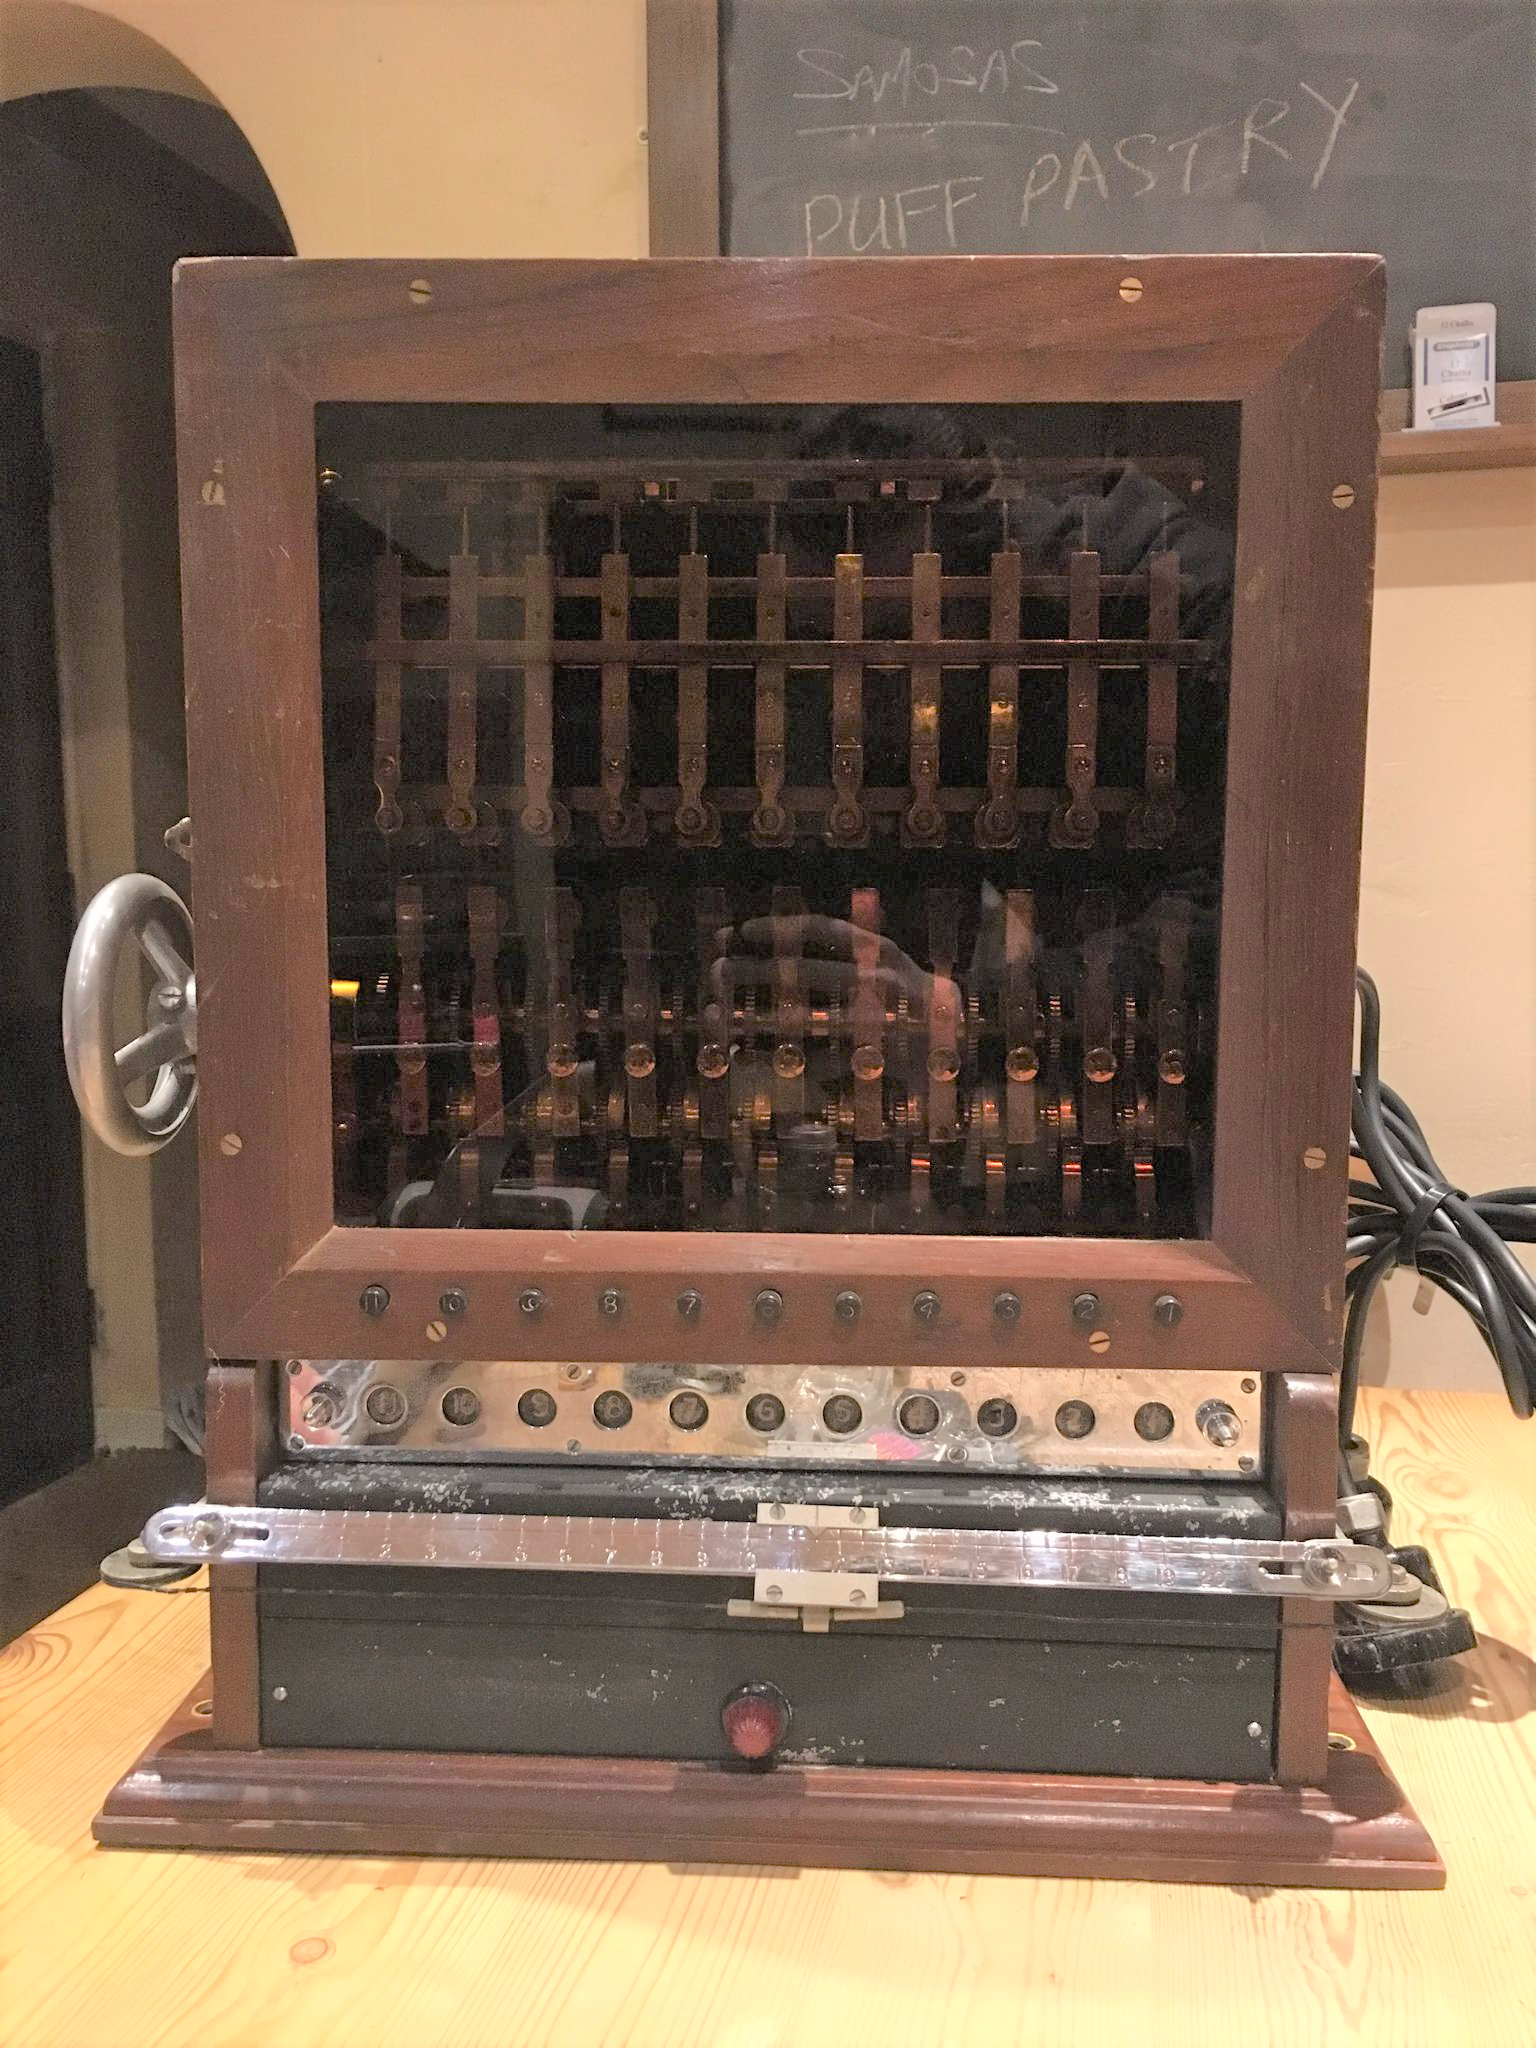 Unknown-Cipher-Machine-Reddit